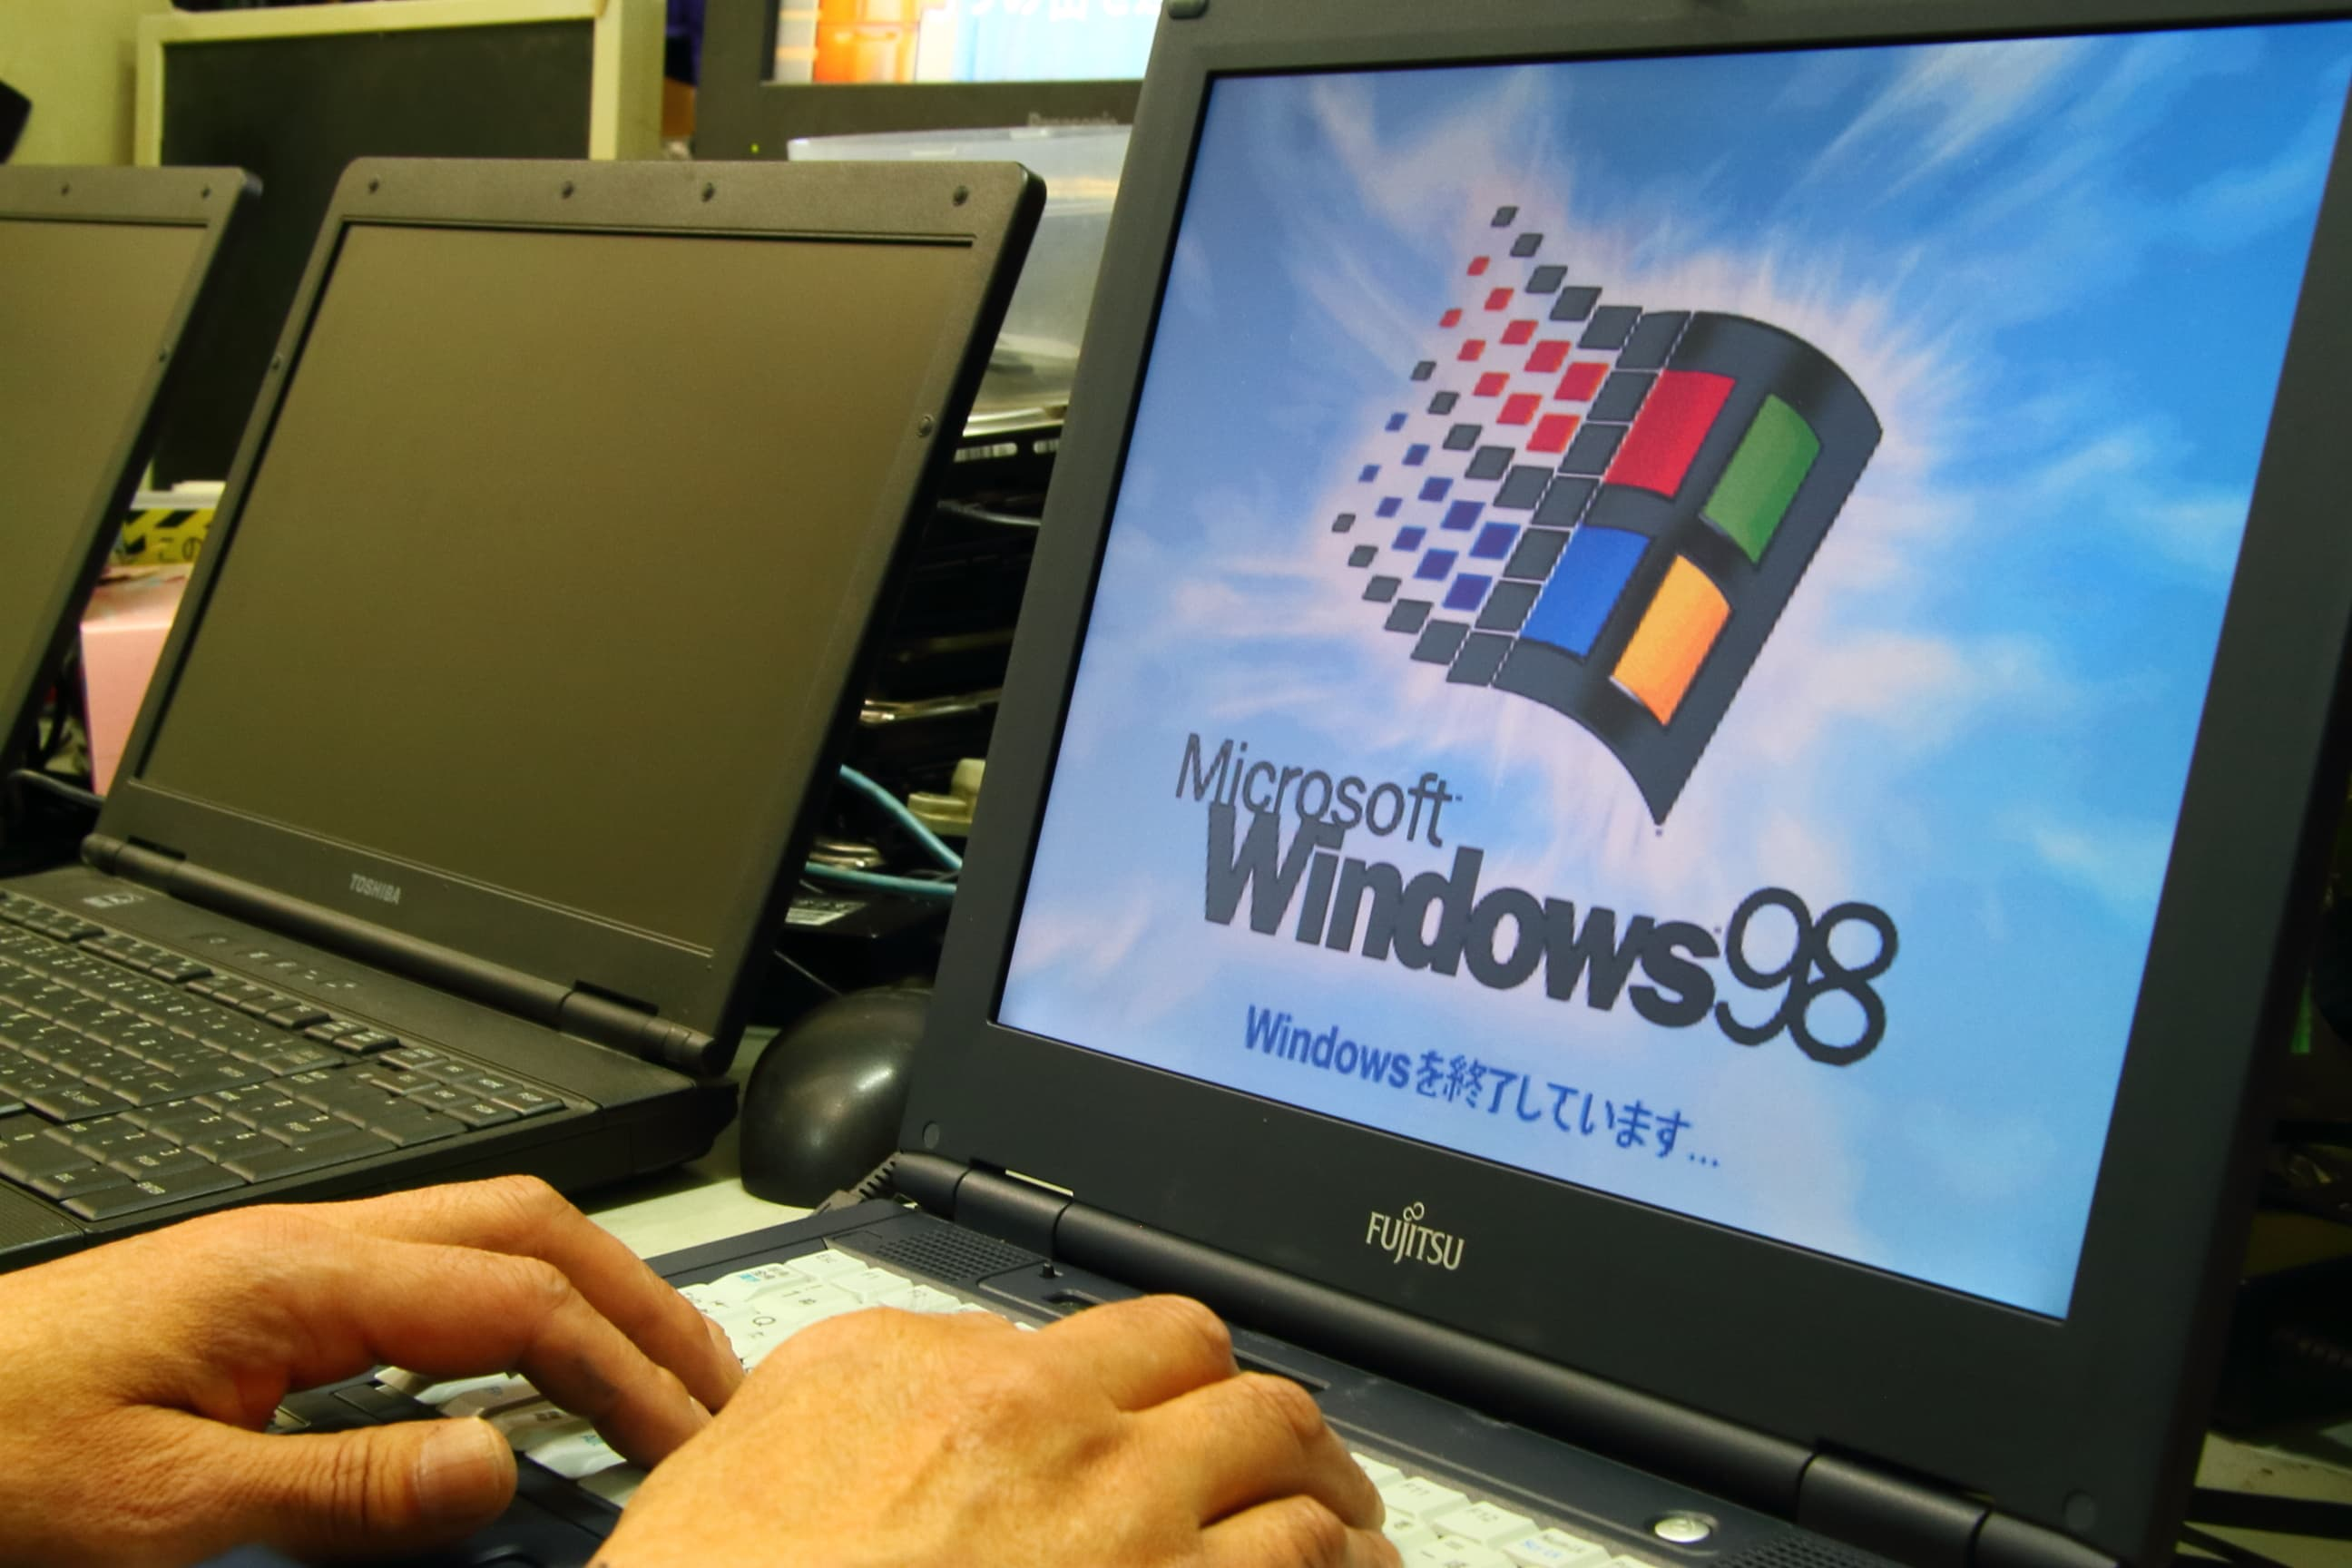 Windows98